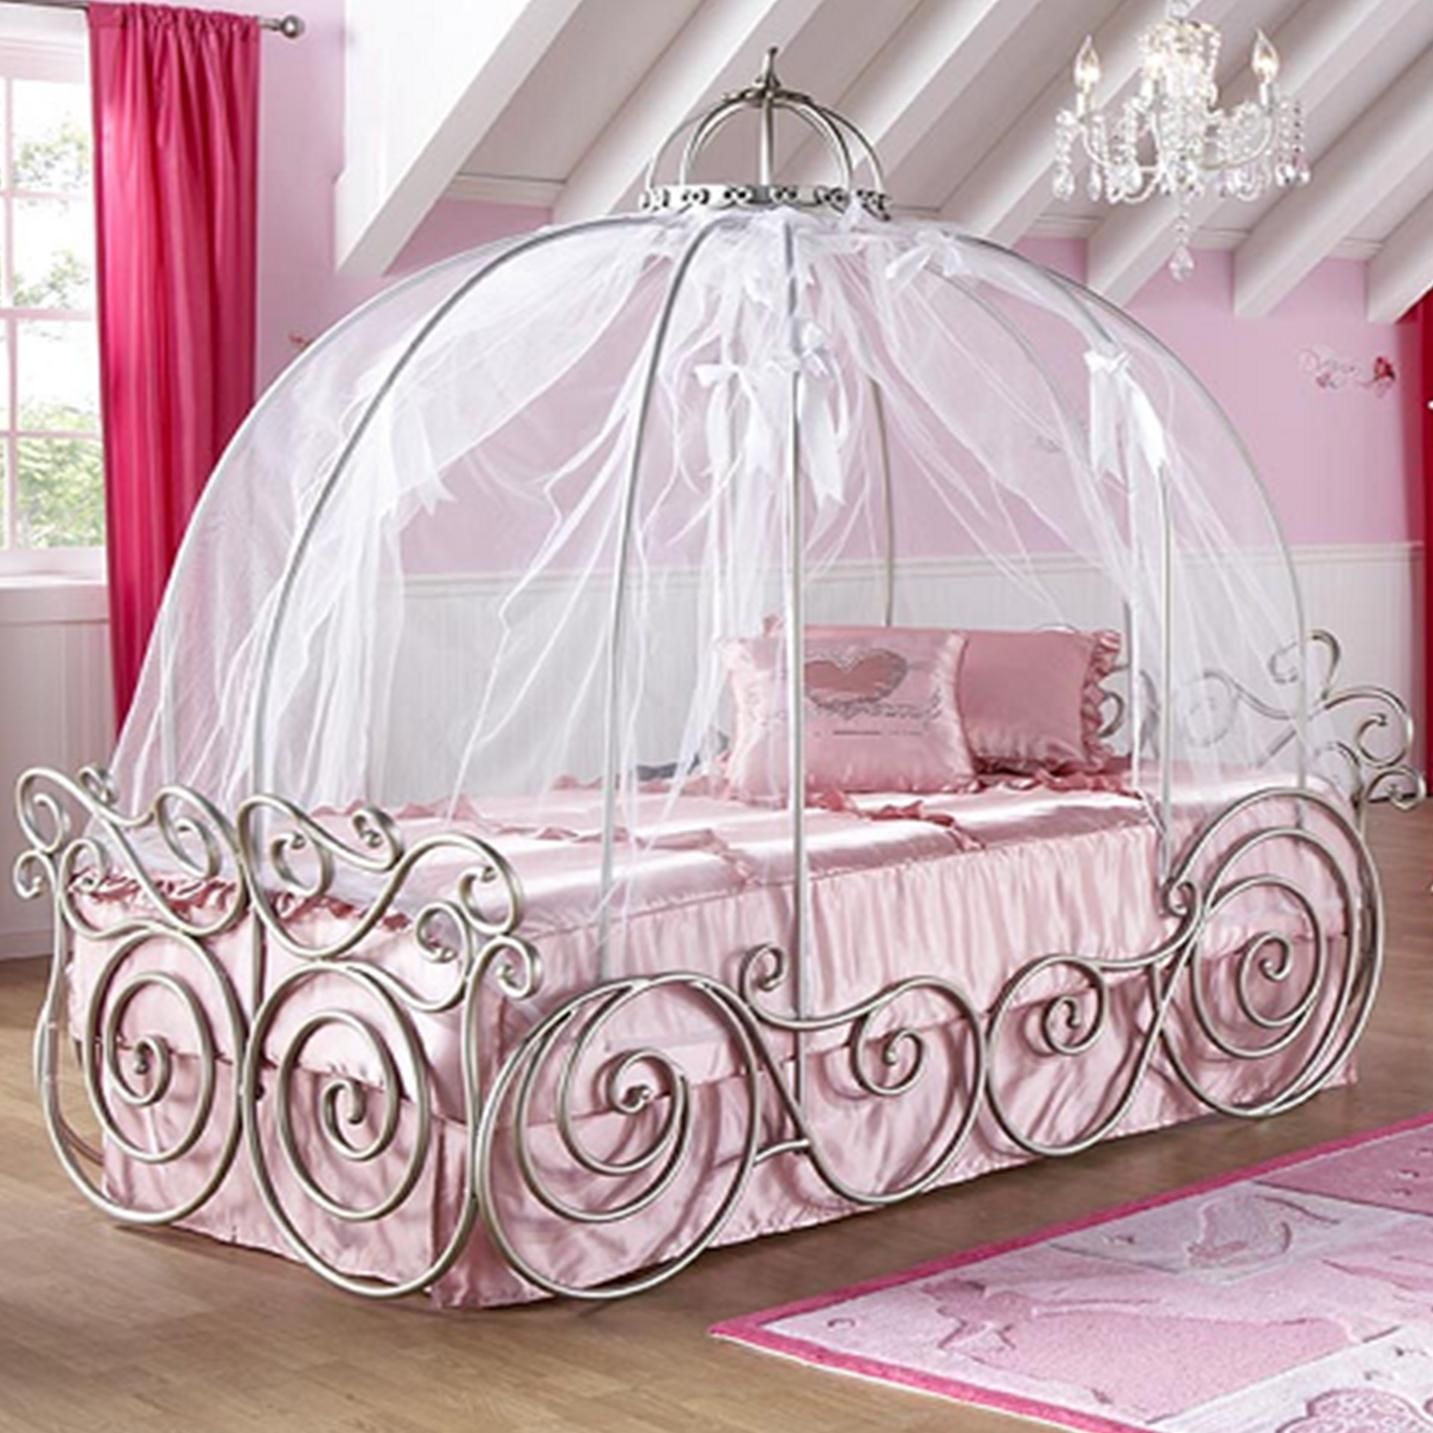 Amazing Design Of The Princess Canopy Bed With White Silk Curtain With Regard To Princess Canopy Bed Pr Princess